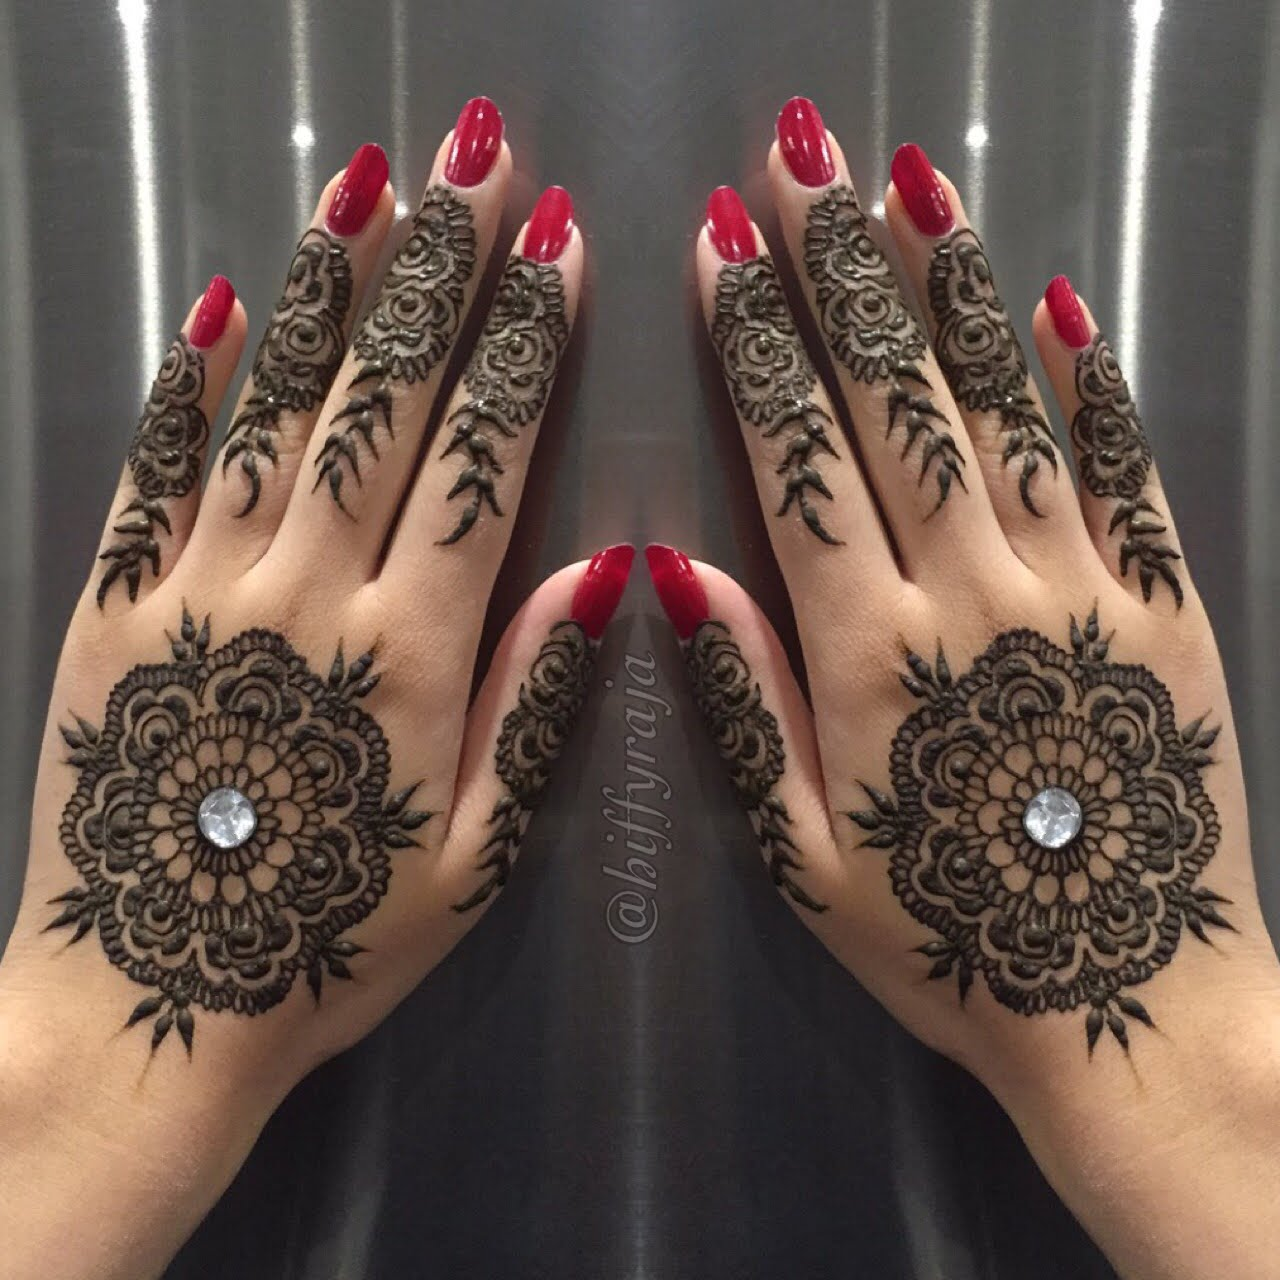 Arabic Mehndi Design For Men: 42 New Arabic Mehndi Designs For Every Occasion (9